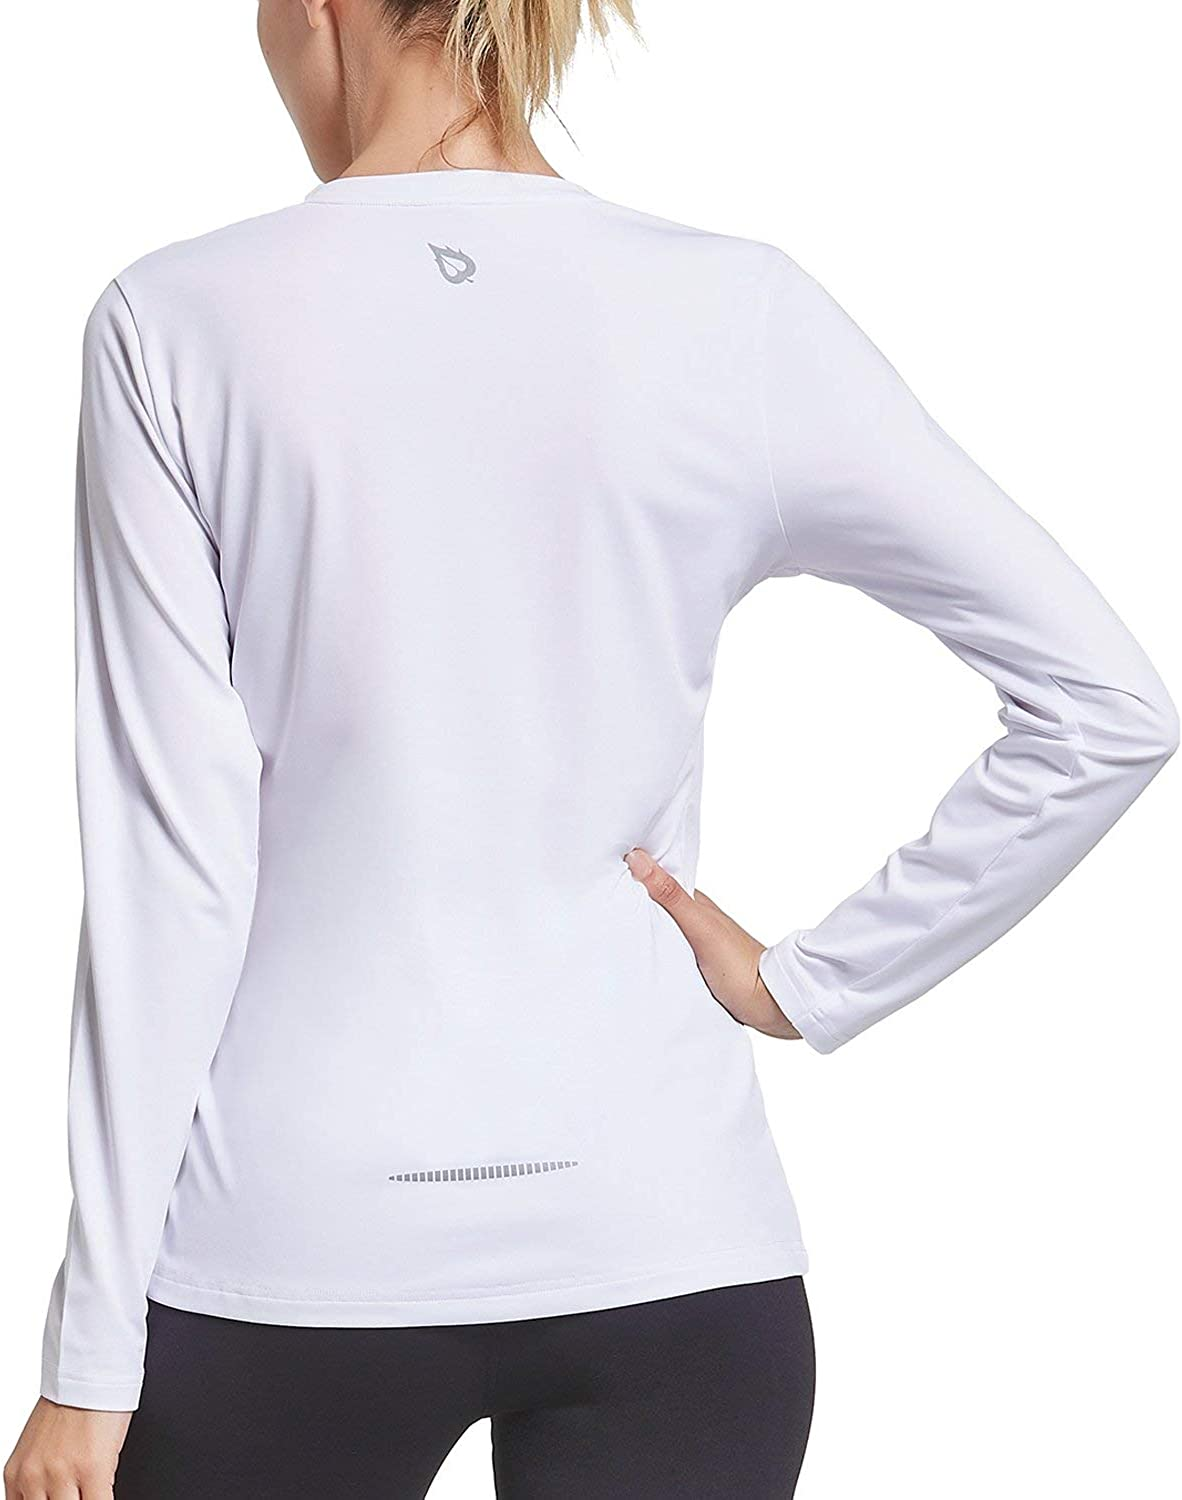 BALEAF Women's Long Sleeve UV Safety and Max 77% OFF trust Shirts S Workout Quick Dry Running